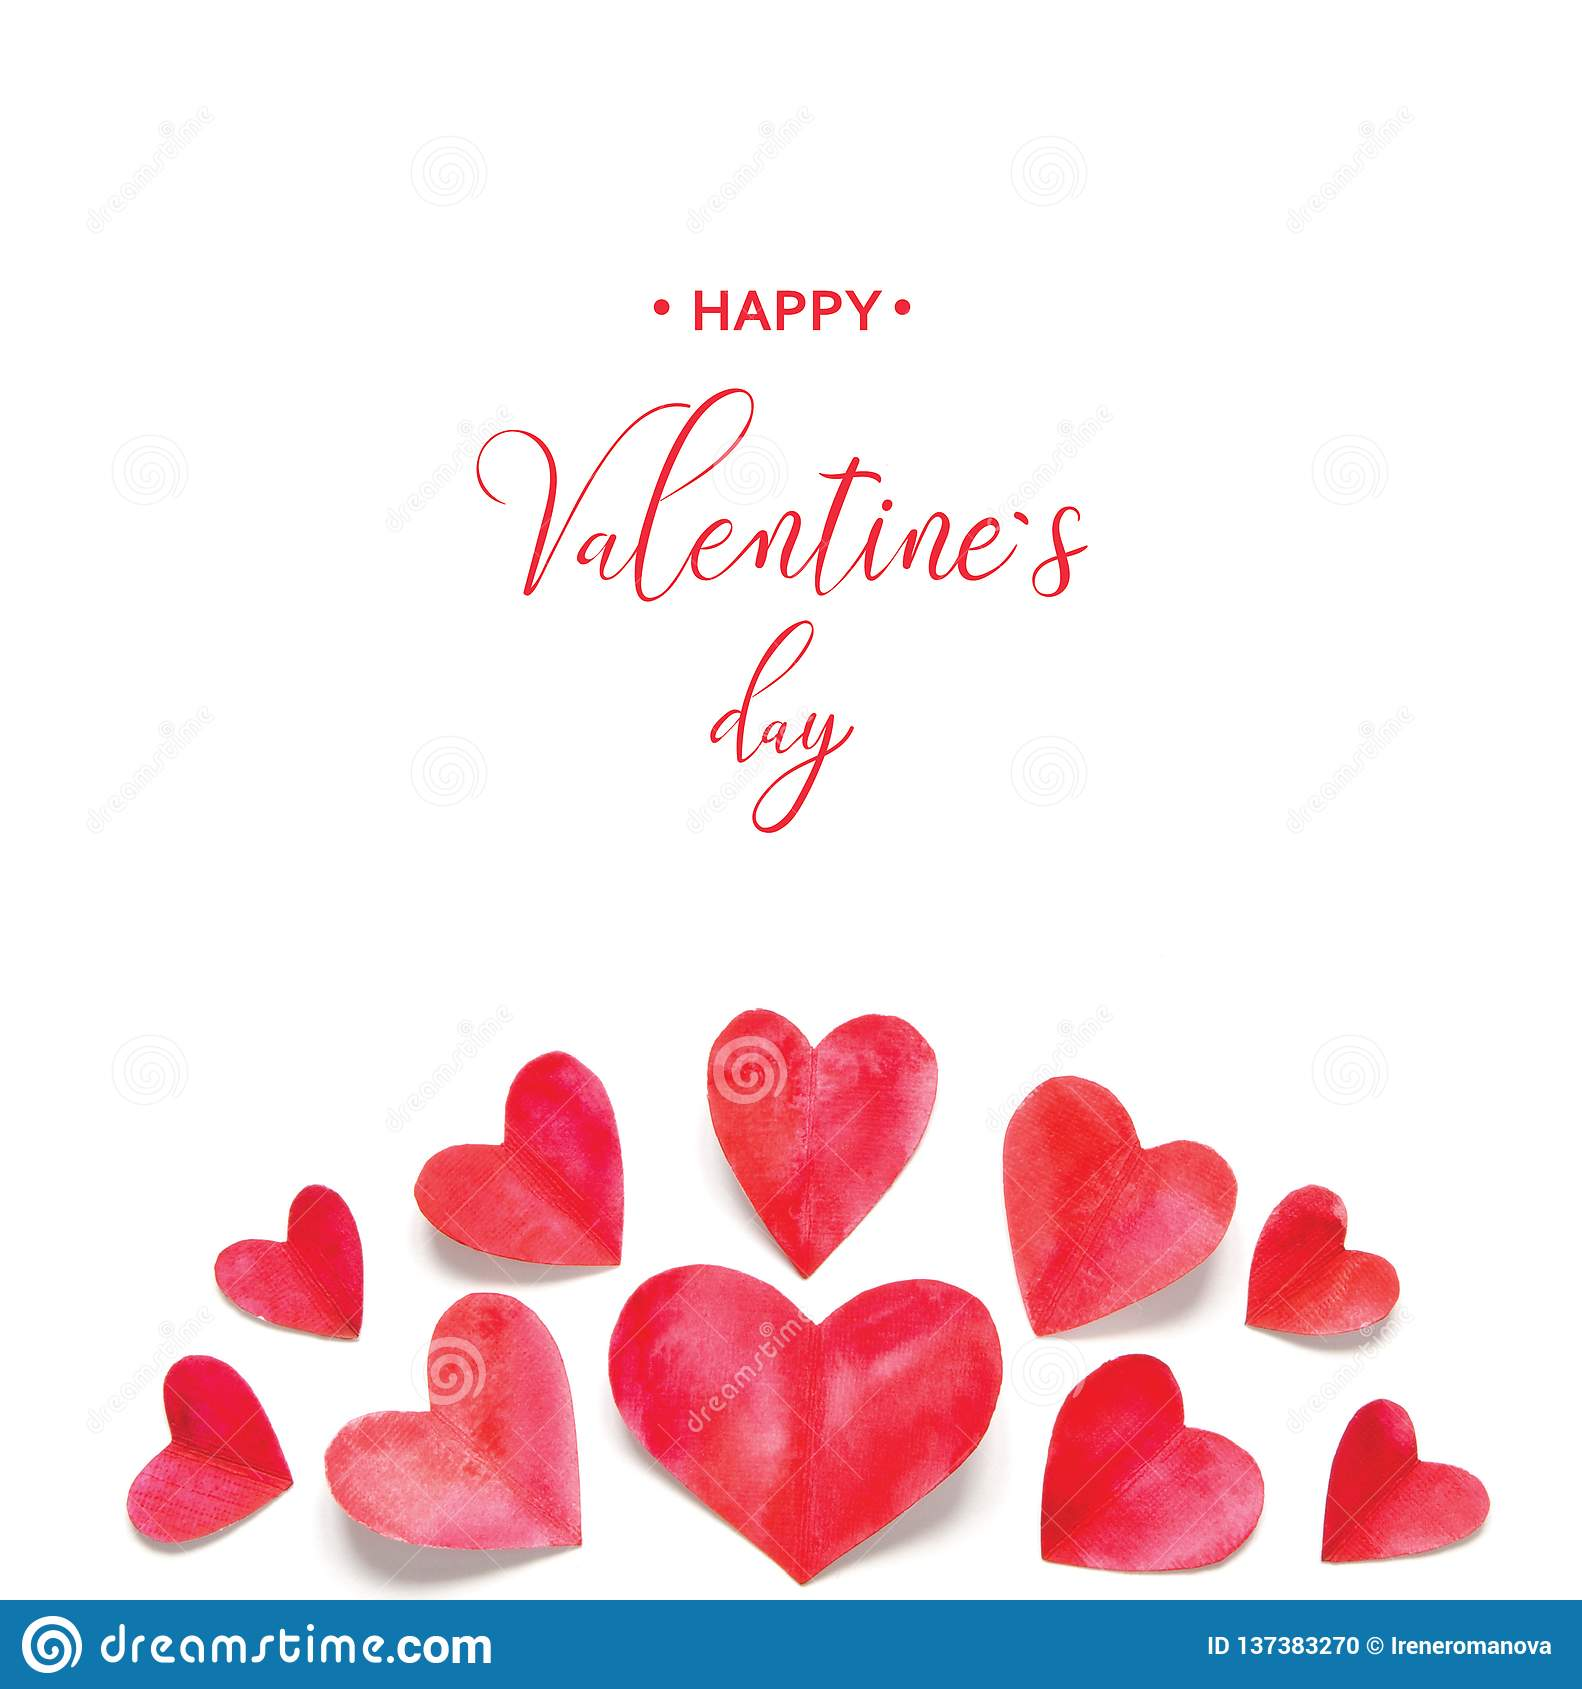 Valentine`s Day greeting card. Watercolor hearts